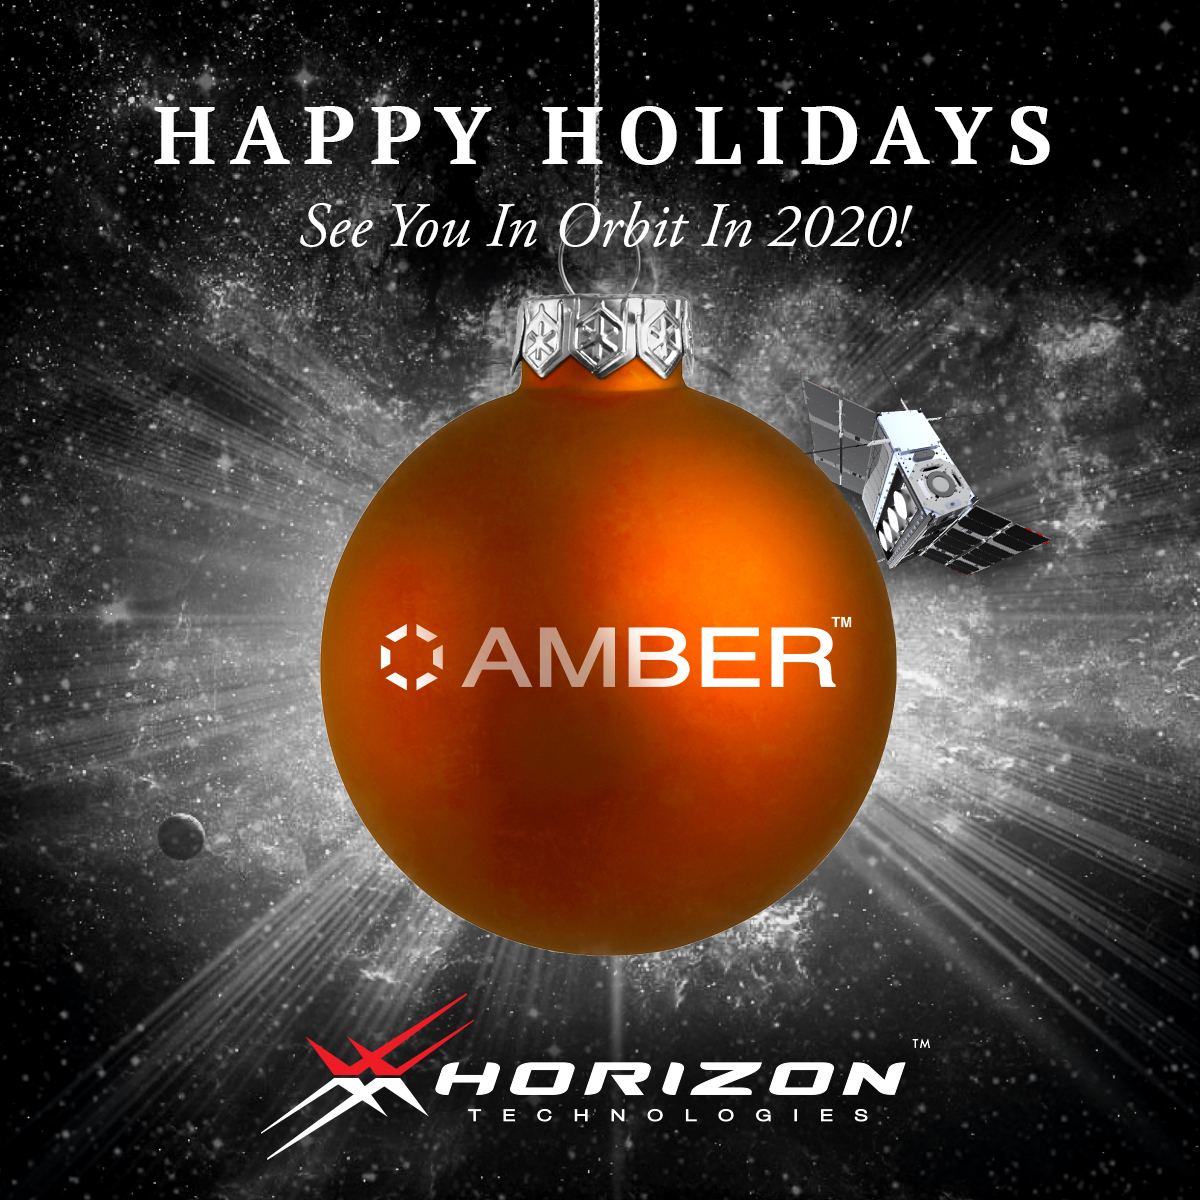 Happy Holidays from Horizon Technologies! See you in orbit in 2020!